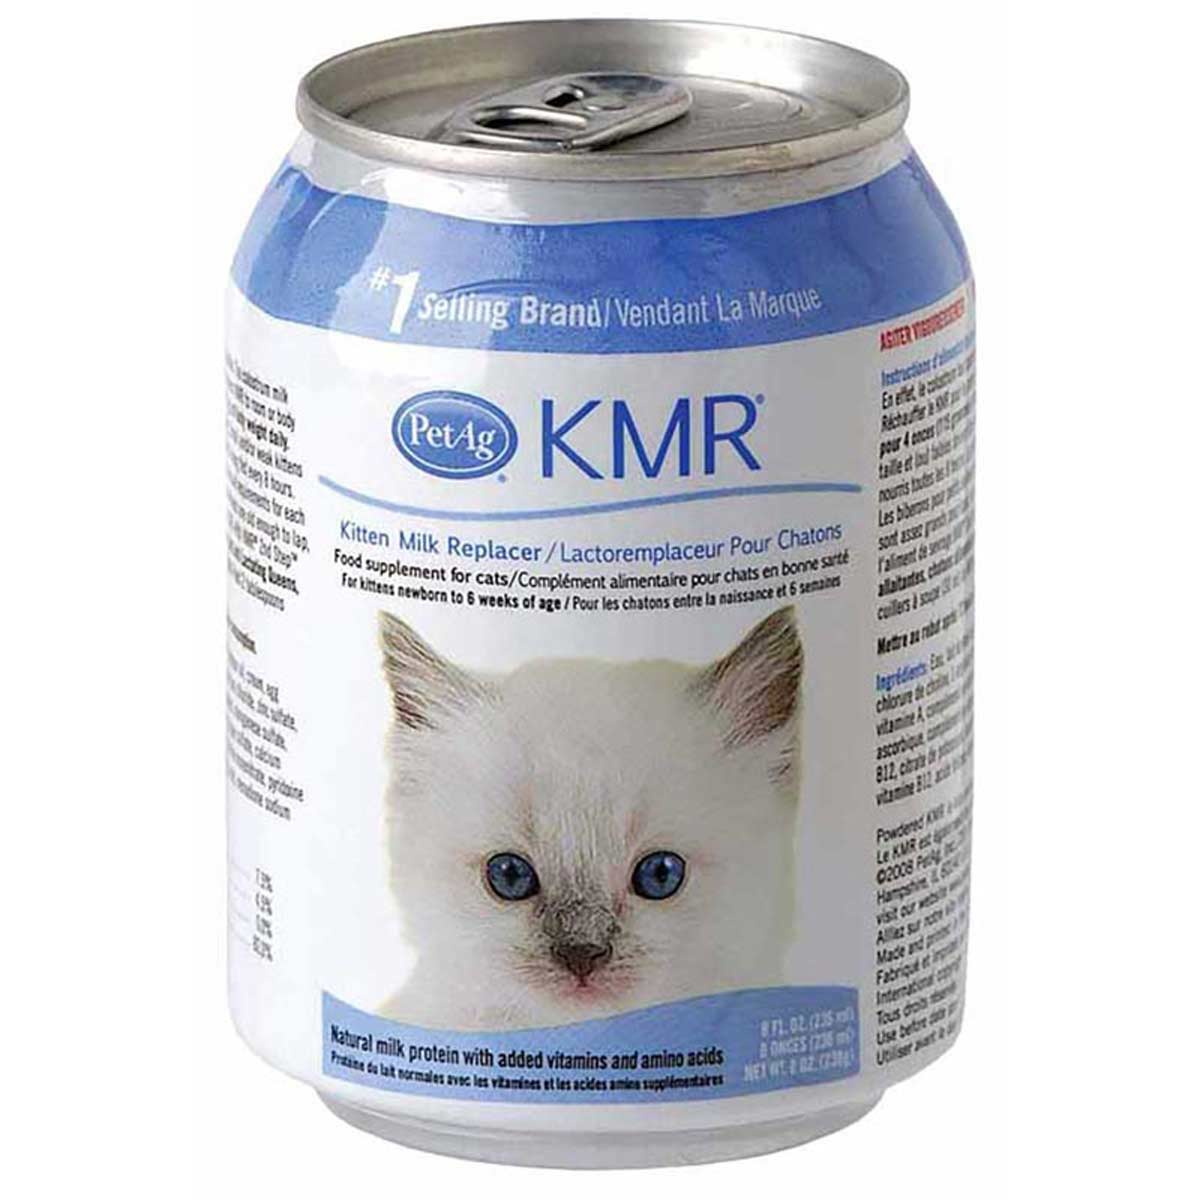 PetAg KMR Kitten Milk Replacement Liquid 8 oz